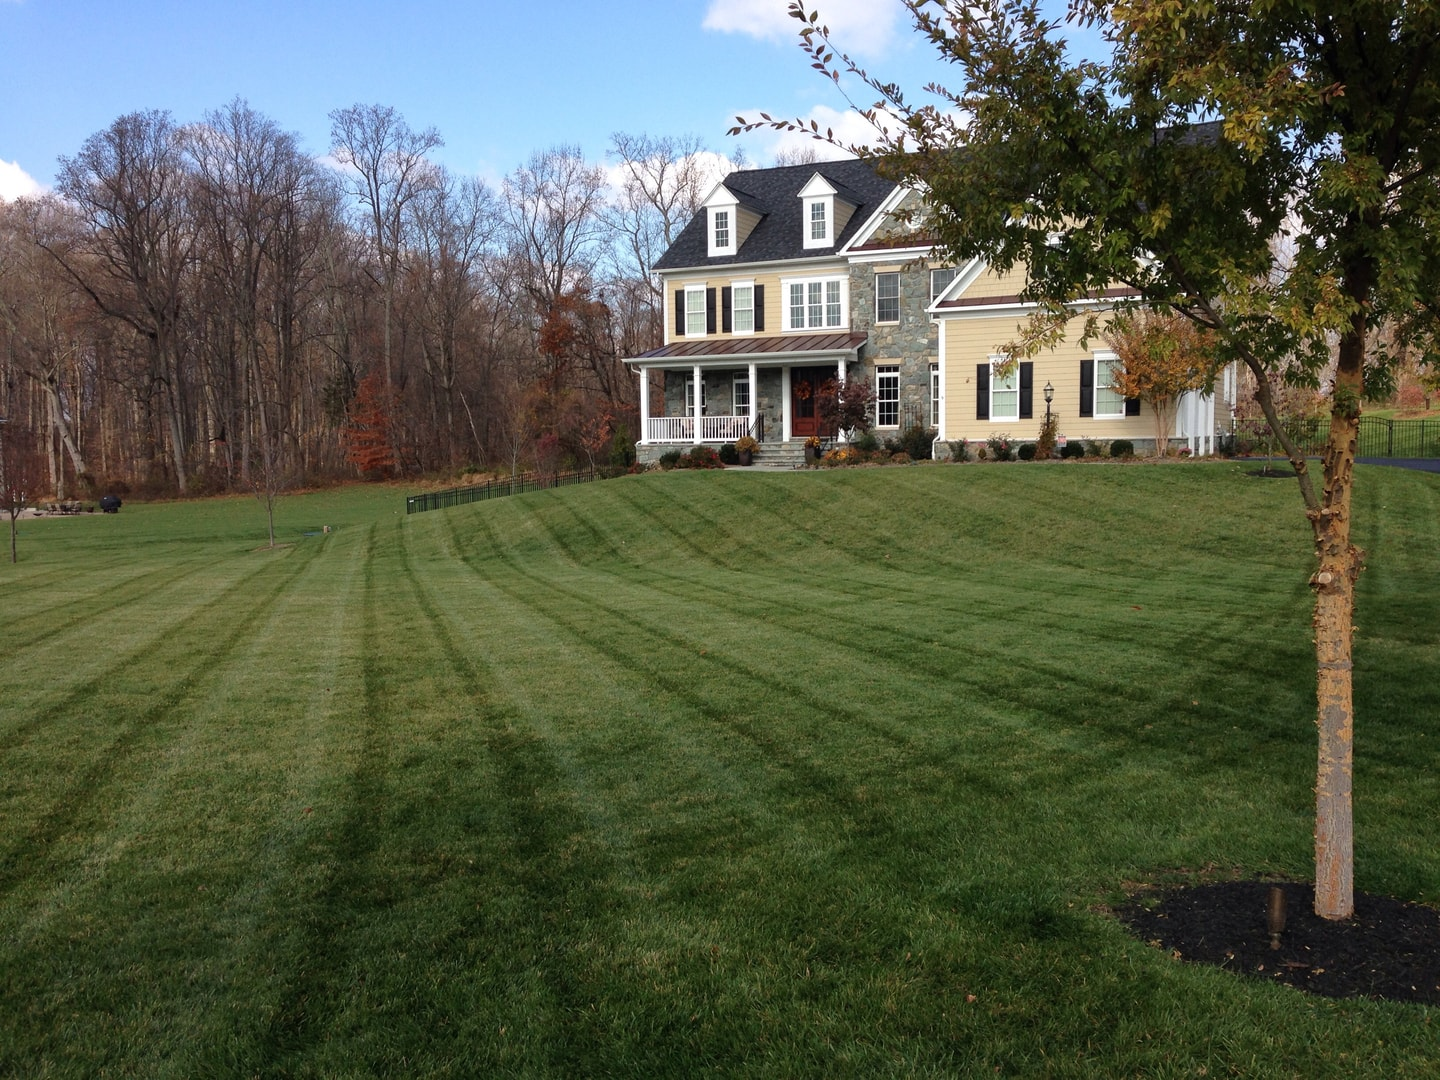 Learn why it's important that your grass is maintained at its ideal height.